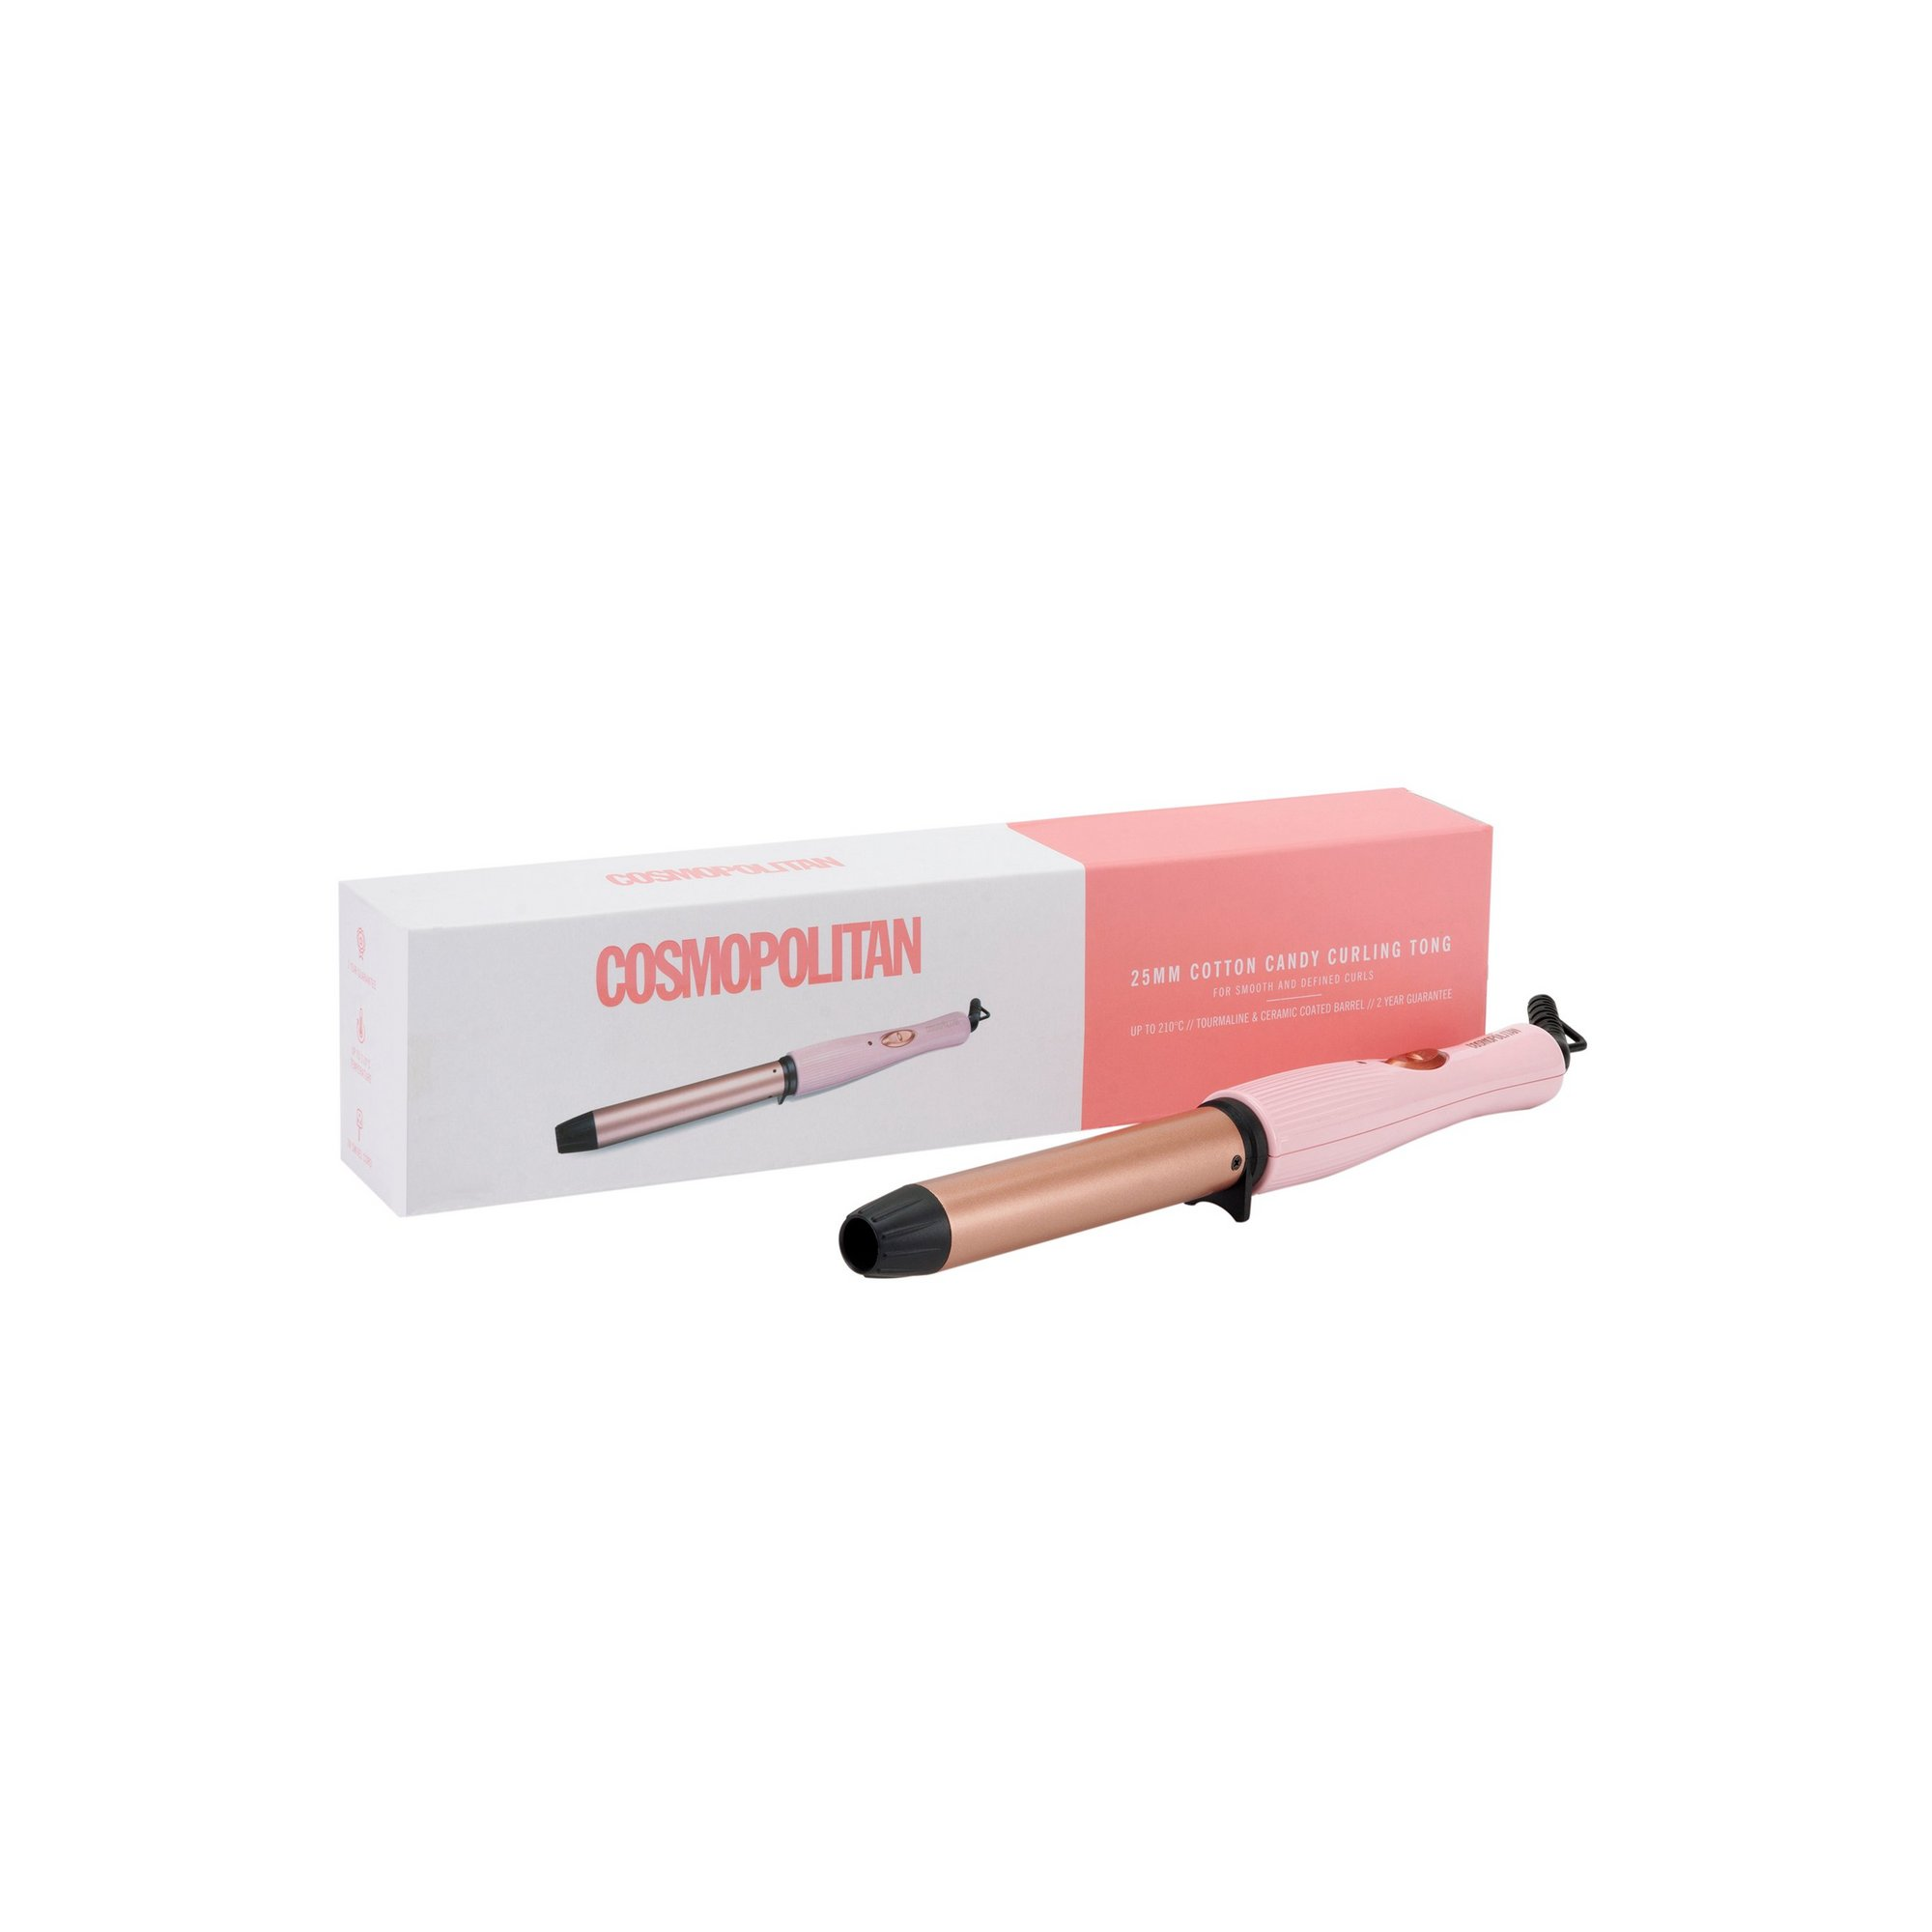 Image of Cosmopolitan Cotton Candy 25mm Defined Wand